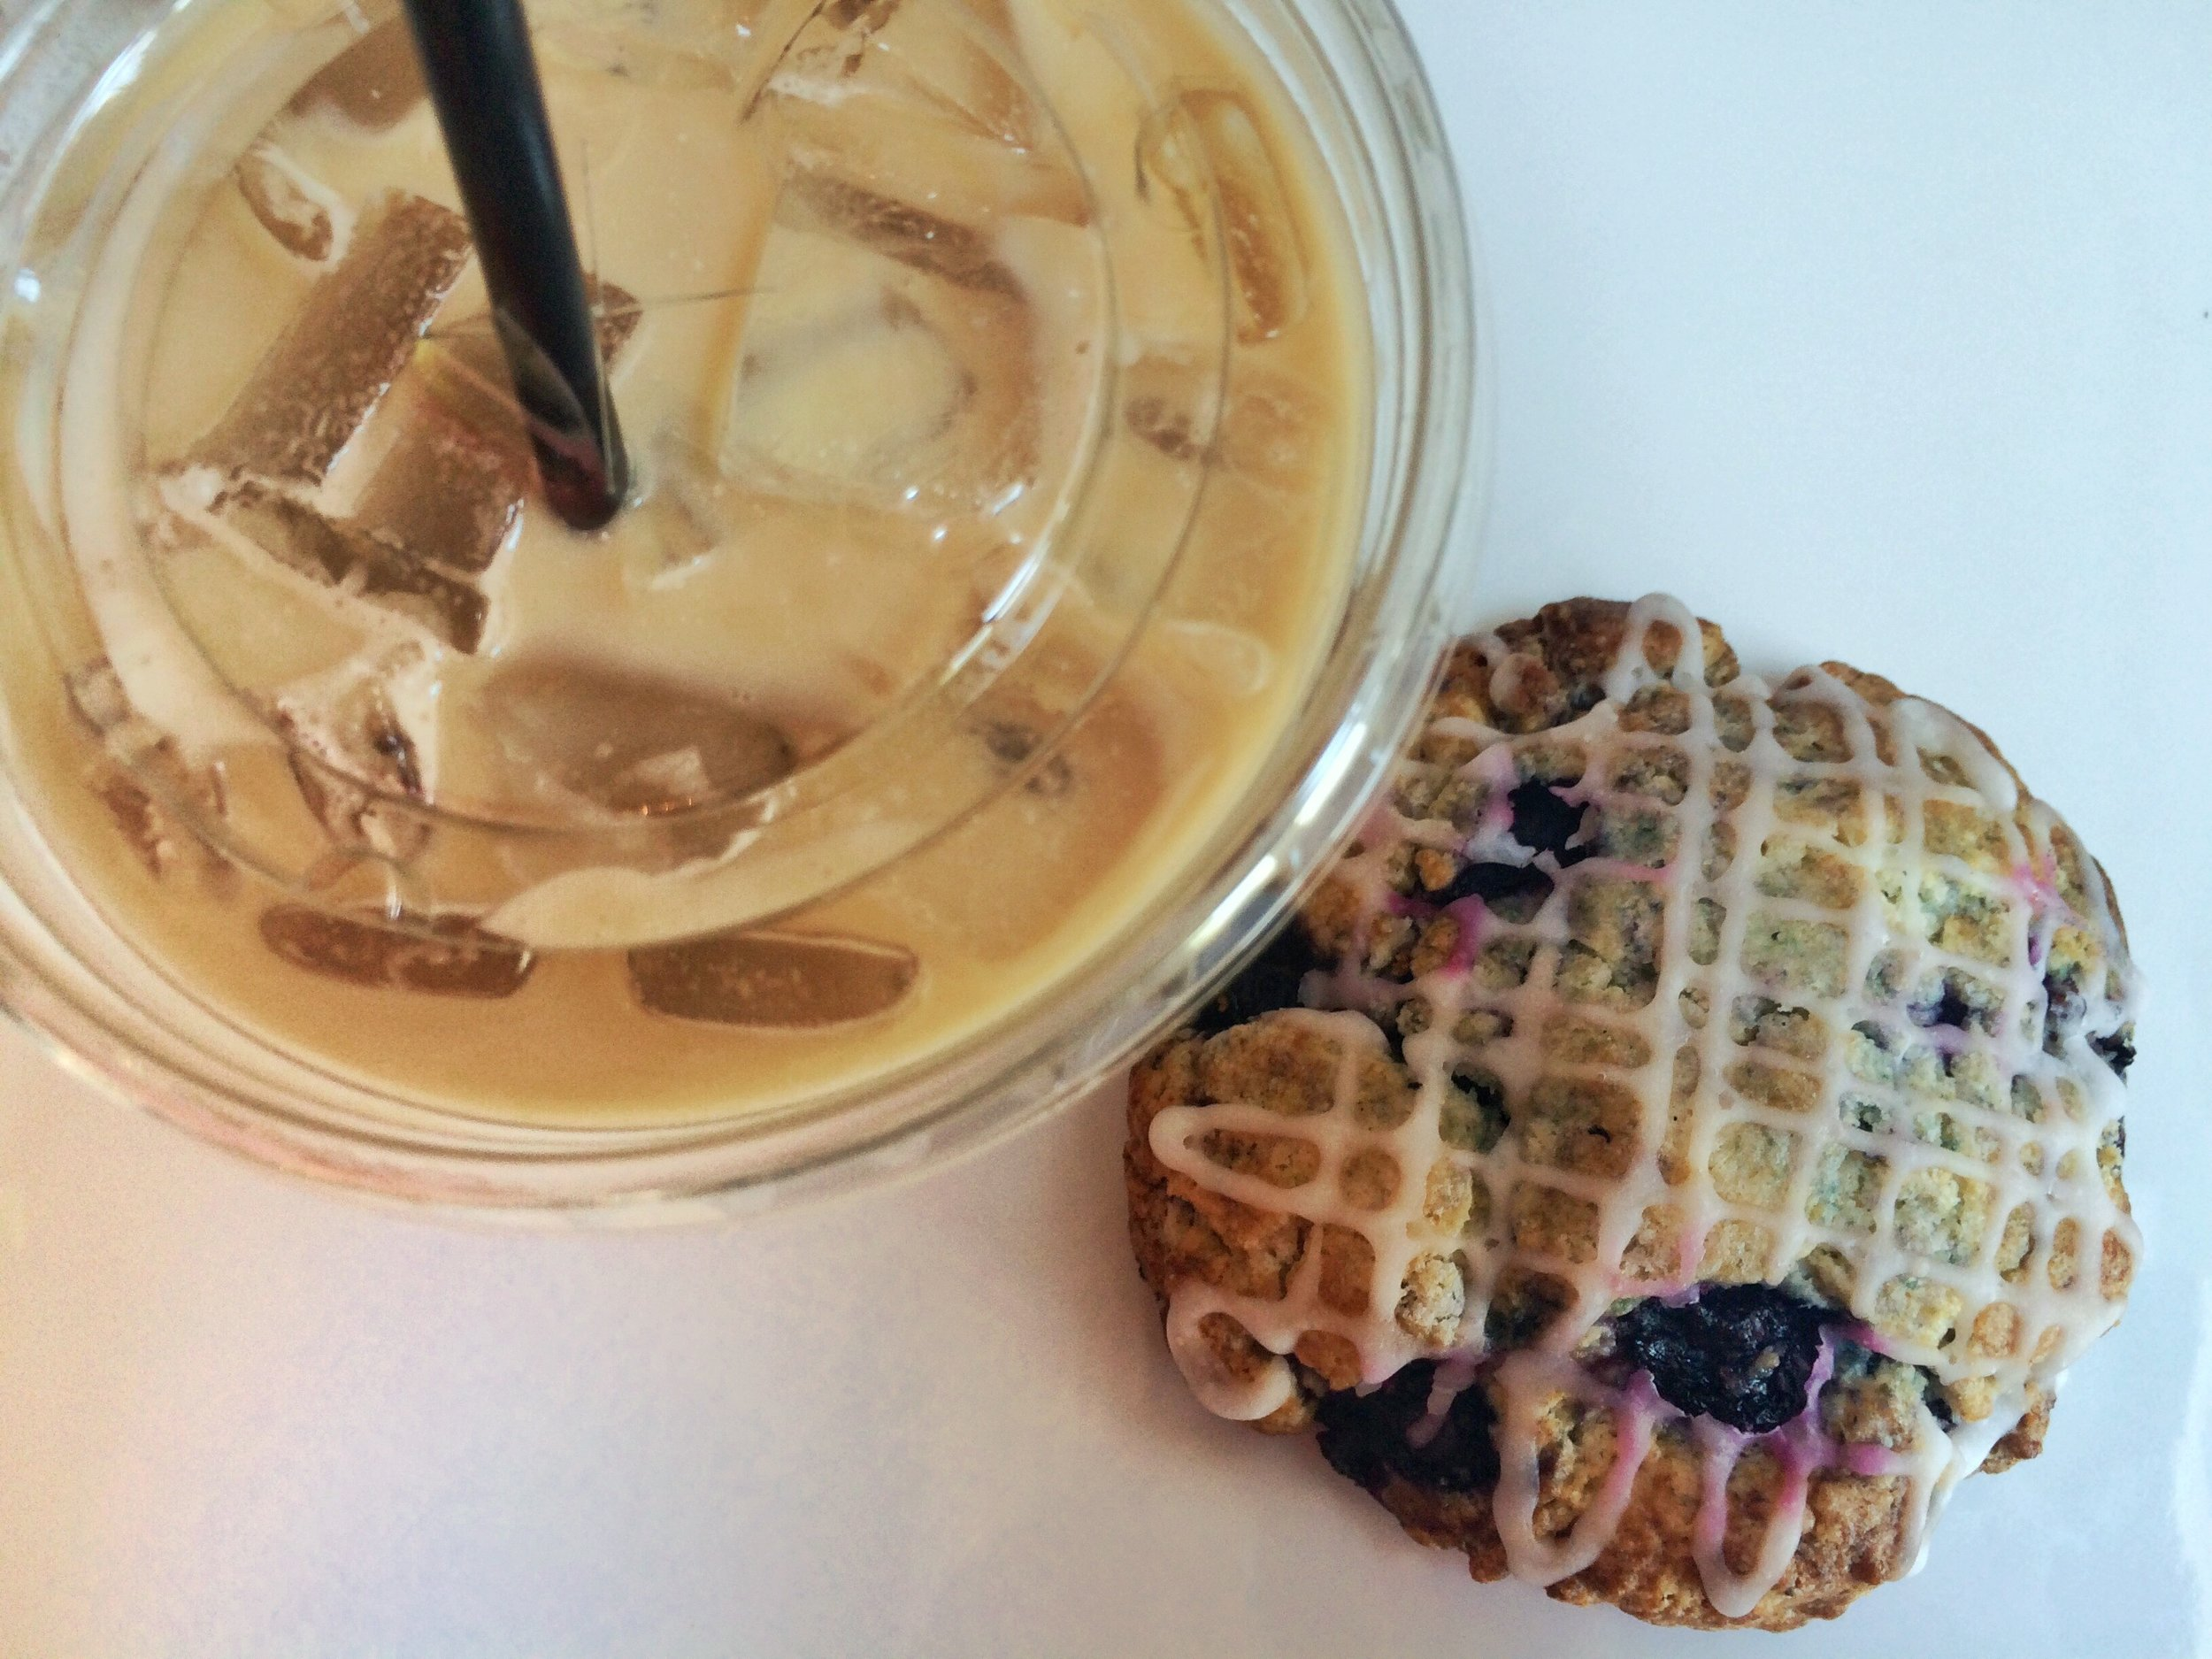 A Homemade Blueberry Scone with an Iced Signature Caramel Latte